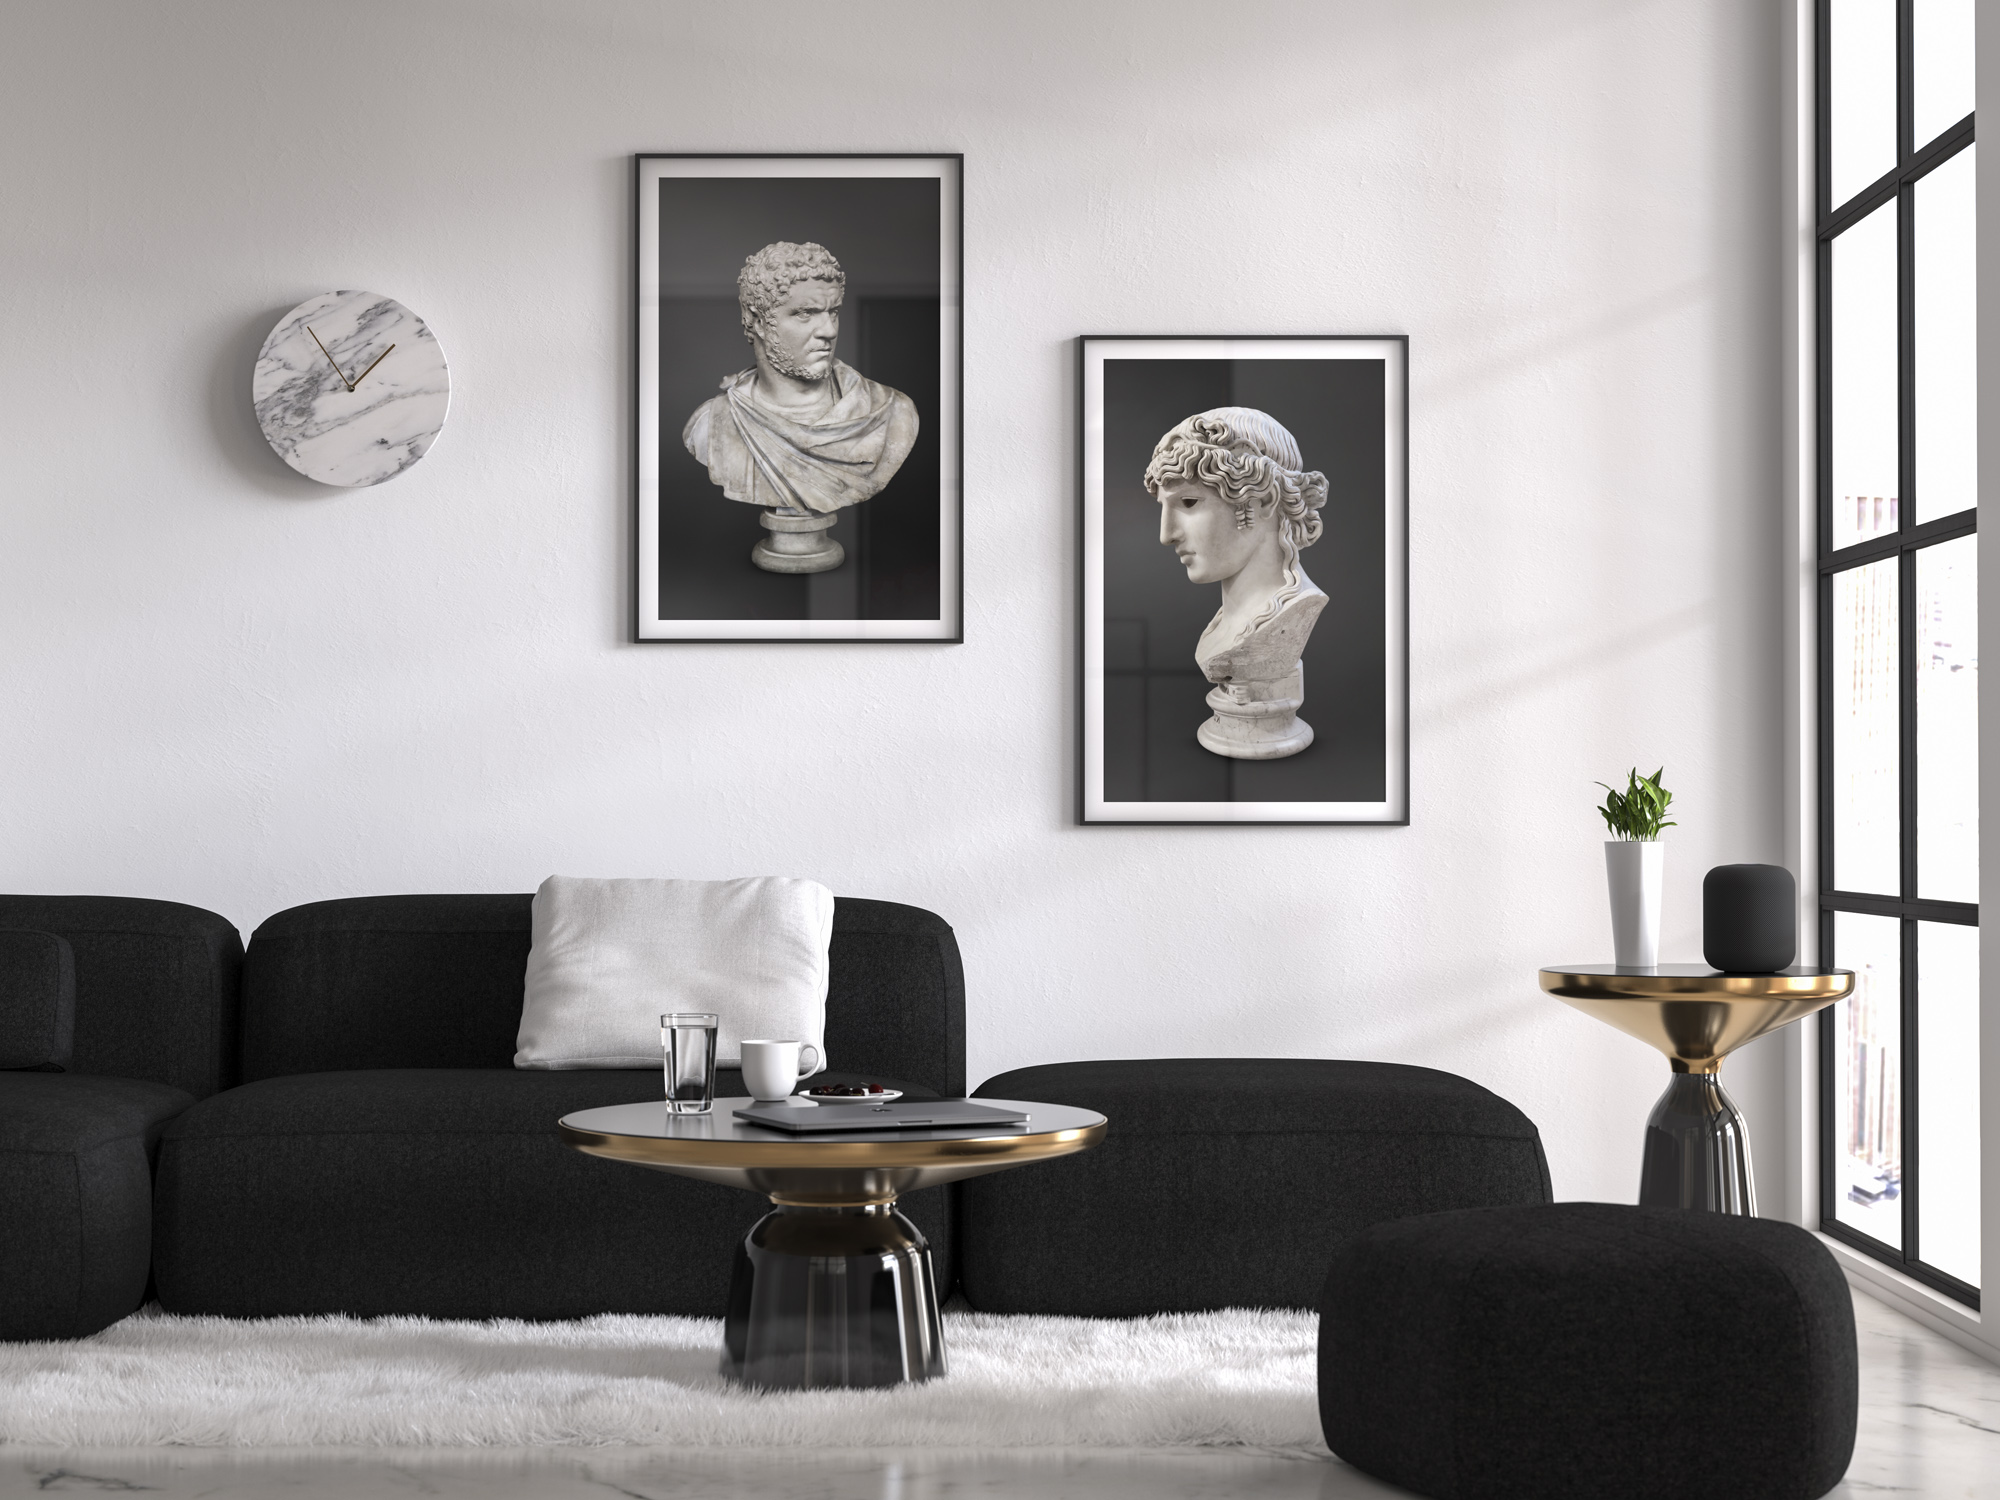 Framed photos on wall of Roman Emperor Caracalla and Agrippina the Elder, on black and white living room house decoration, part of Ancient Influencers Photography series by Maria Queralt. Photography, design and art direction by Maria Queralt